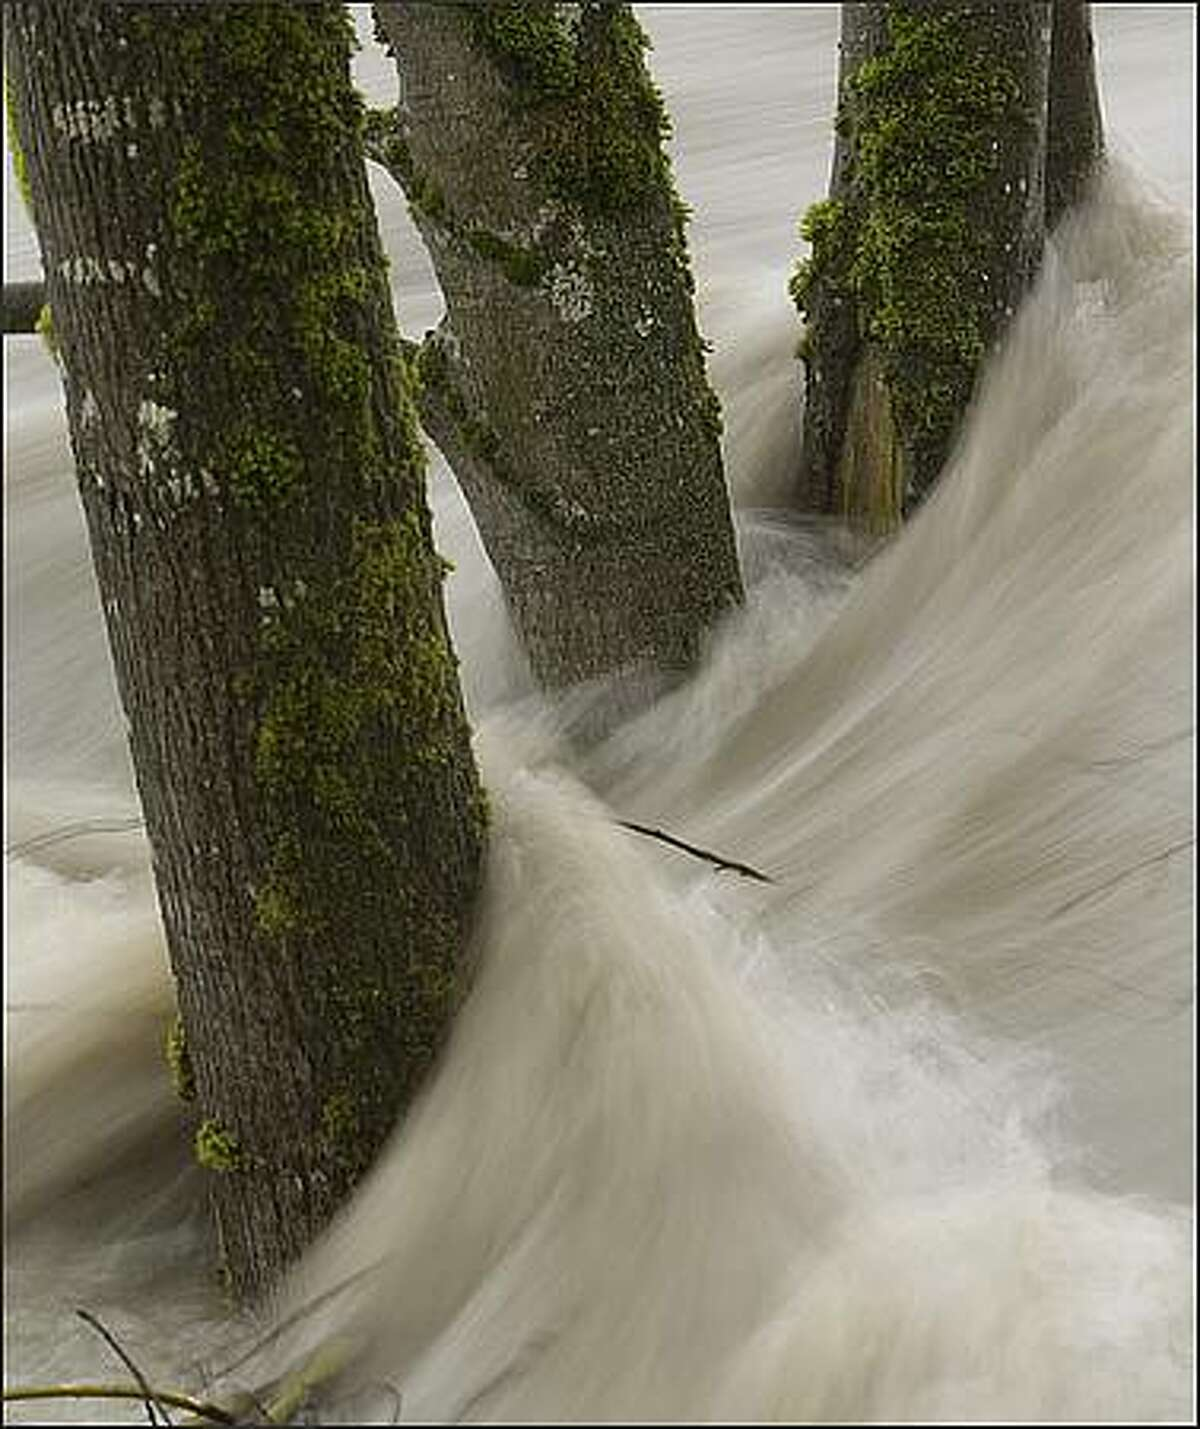 The Stillaguamish River, at the 18-foot mark, rushes past trees in Haller Park in Arlington, Wash. By the next morning, the trees were gone; the river reached the 24-foot mark. Jan. 7, 2009.